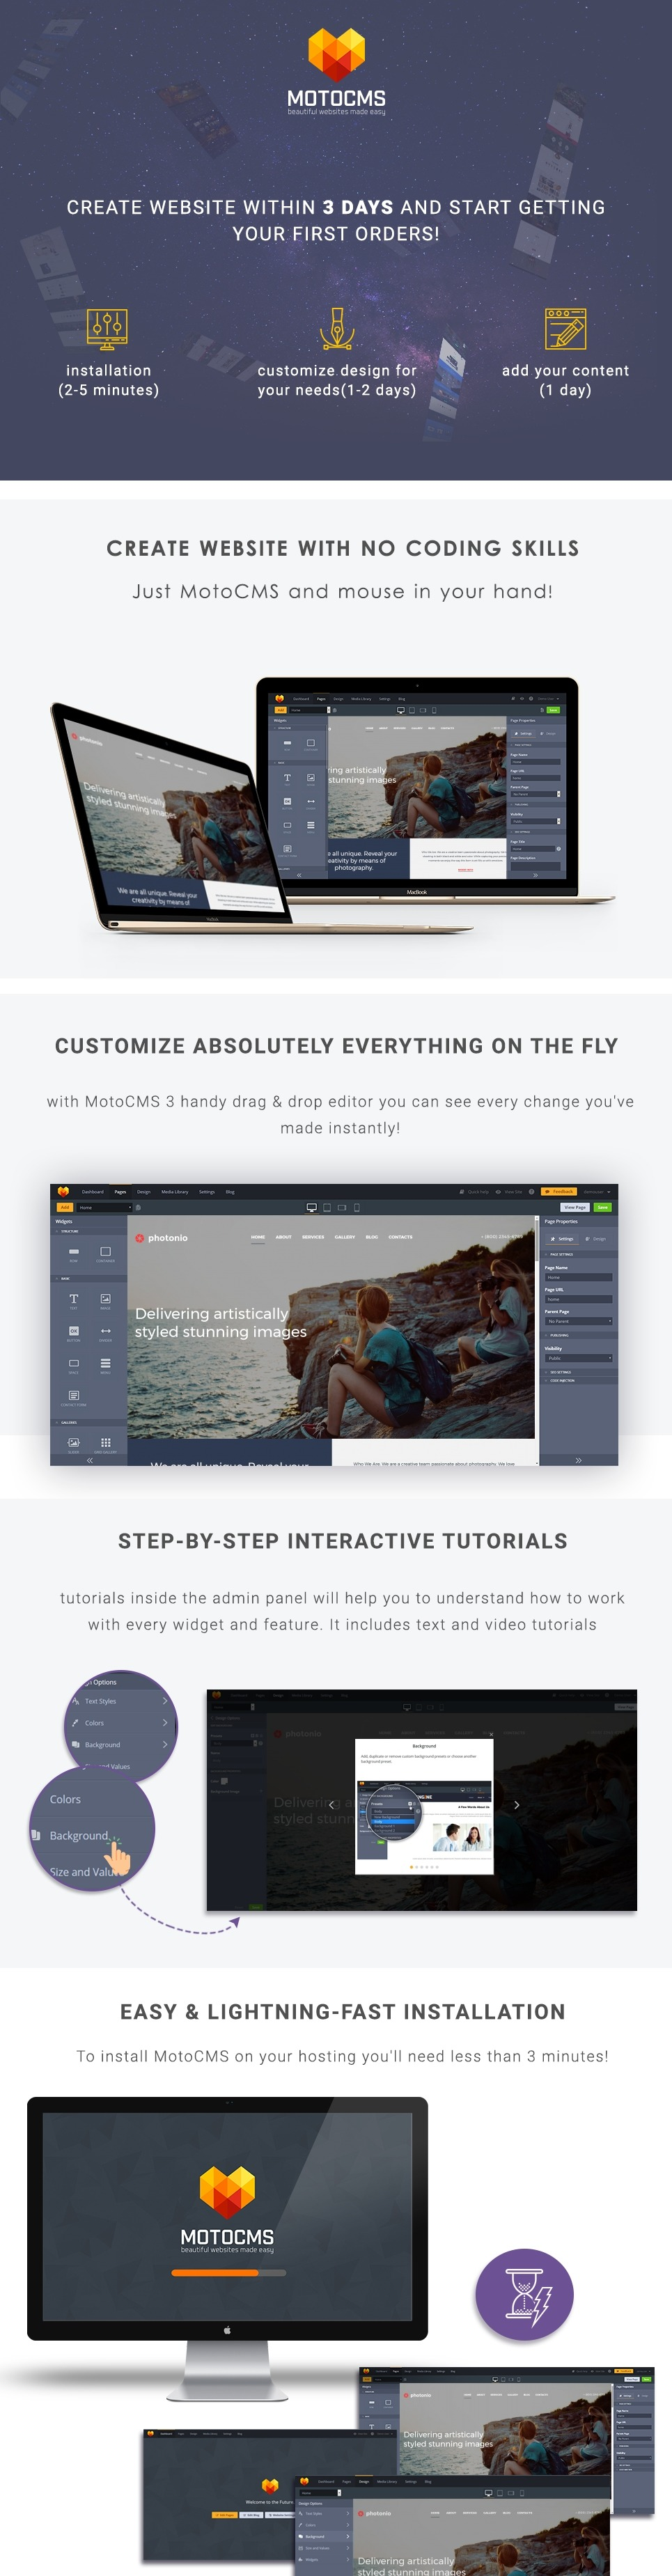 Gallery Blog Template For Photo Blogger Websites Motocms